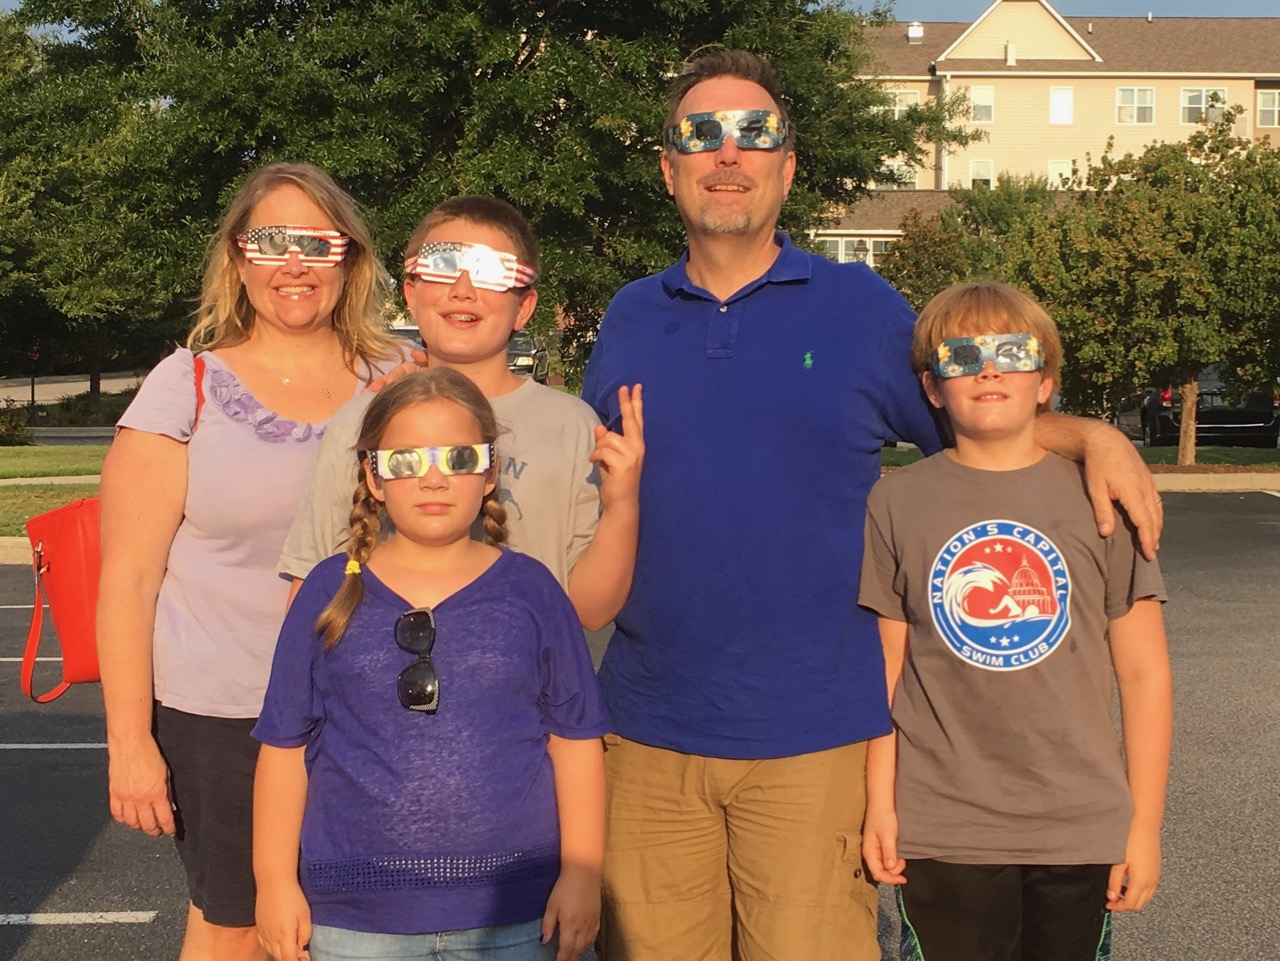 On our way to the Great American Eclipse in 2017.